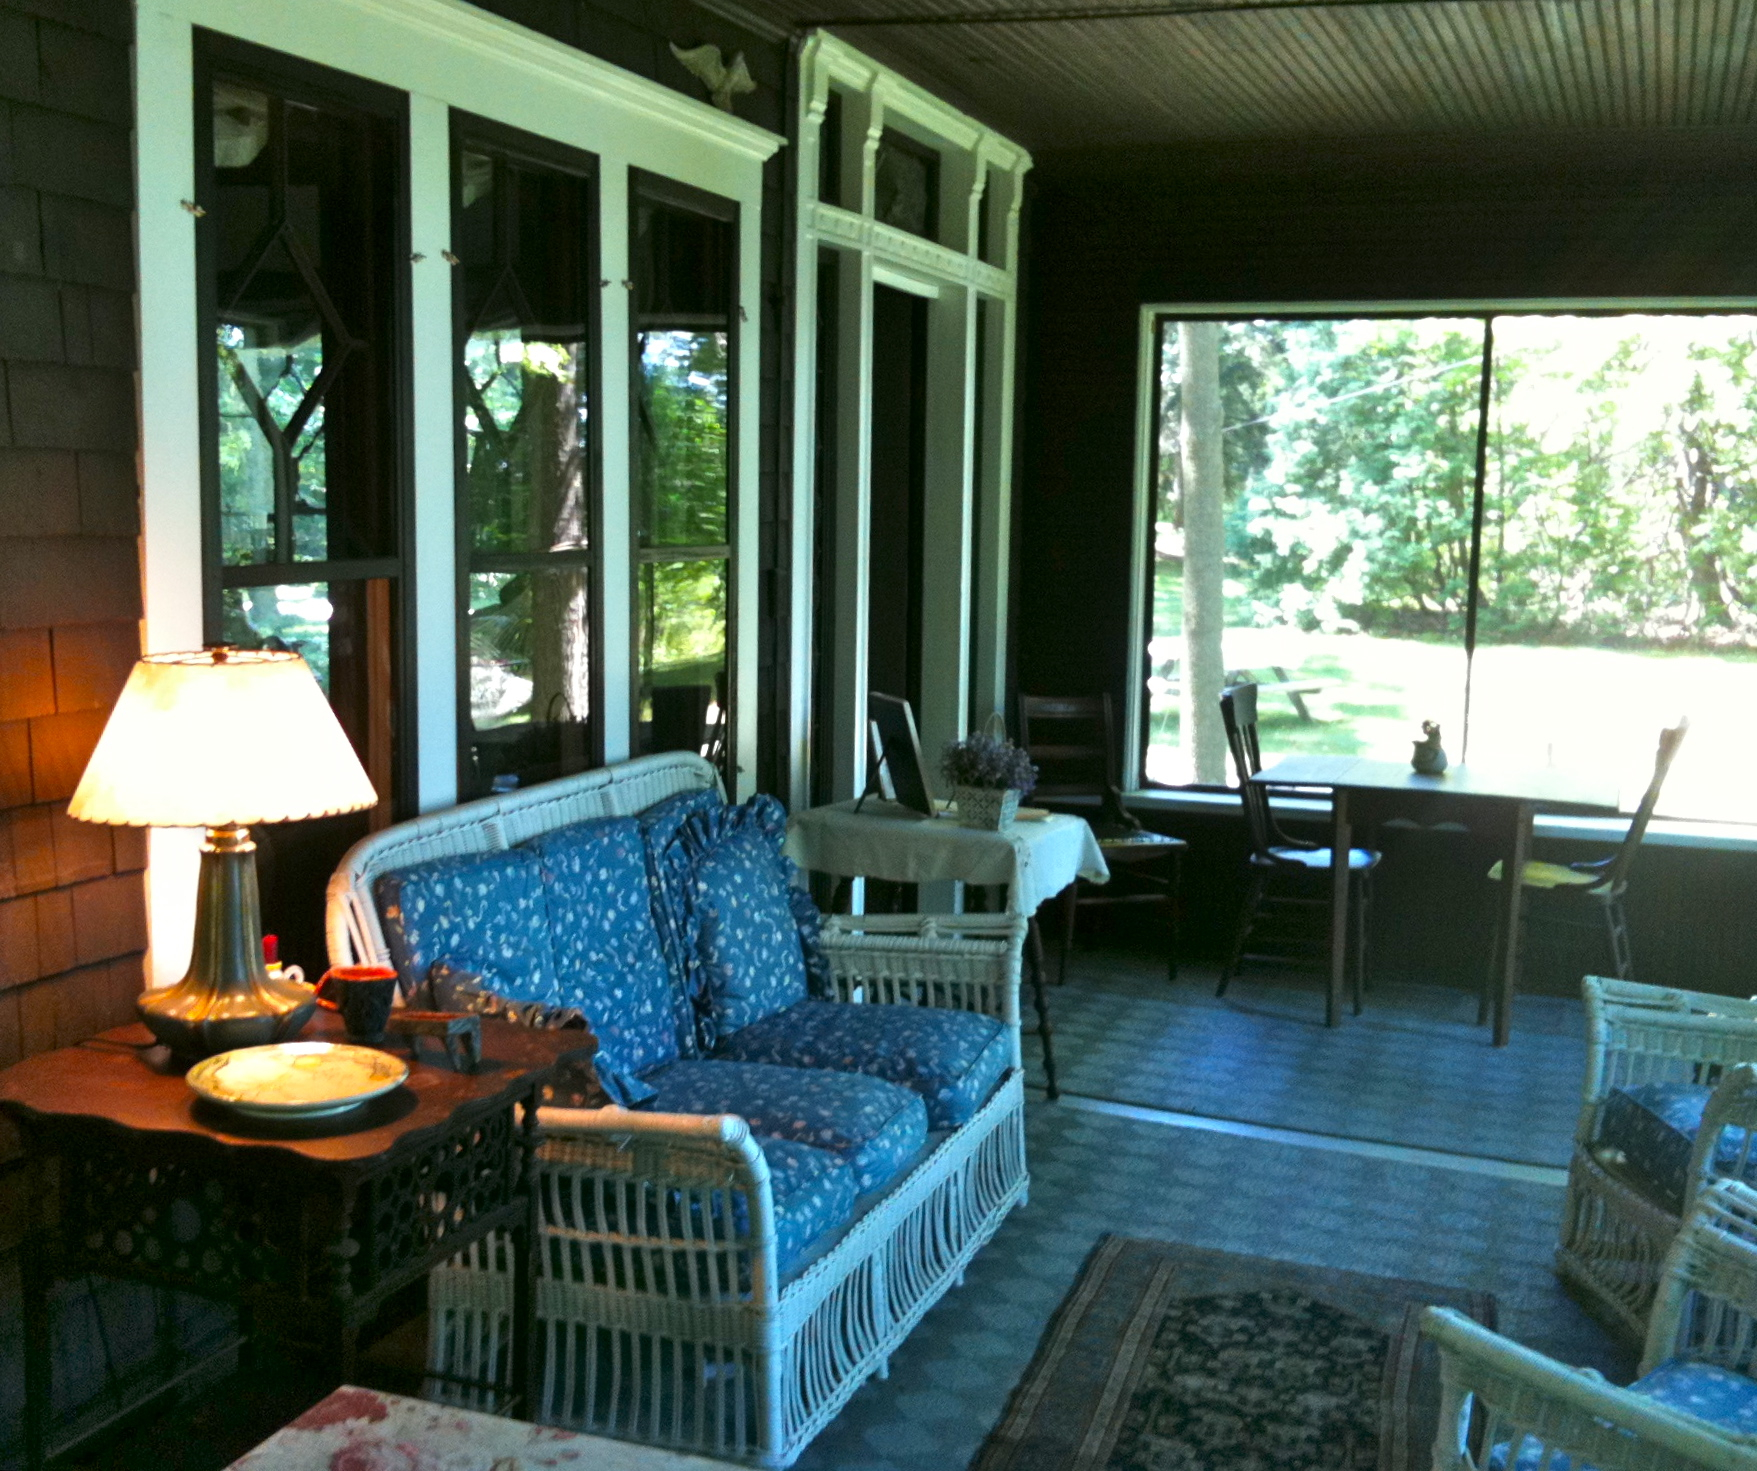 Porch Pictures For Design And Decorating Ideas: Creating Small Scale Community In A